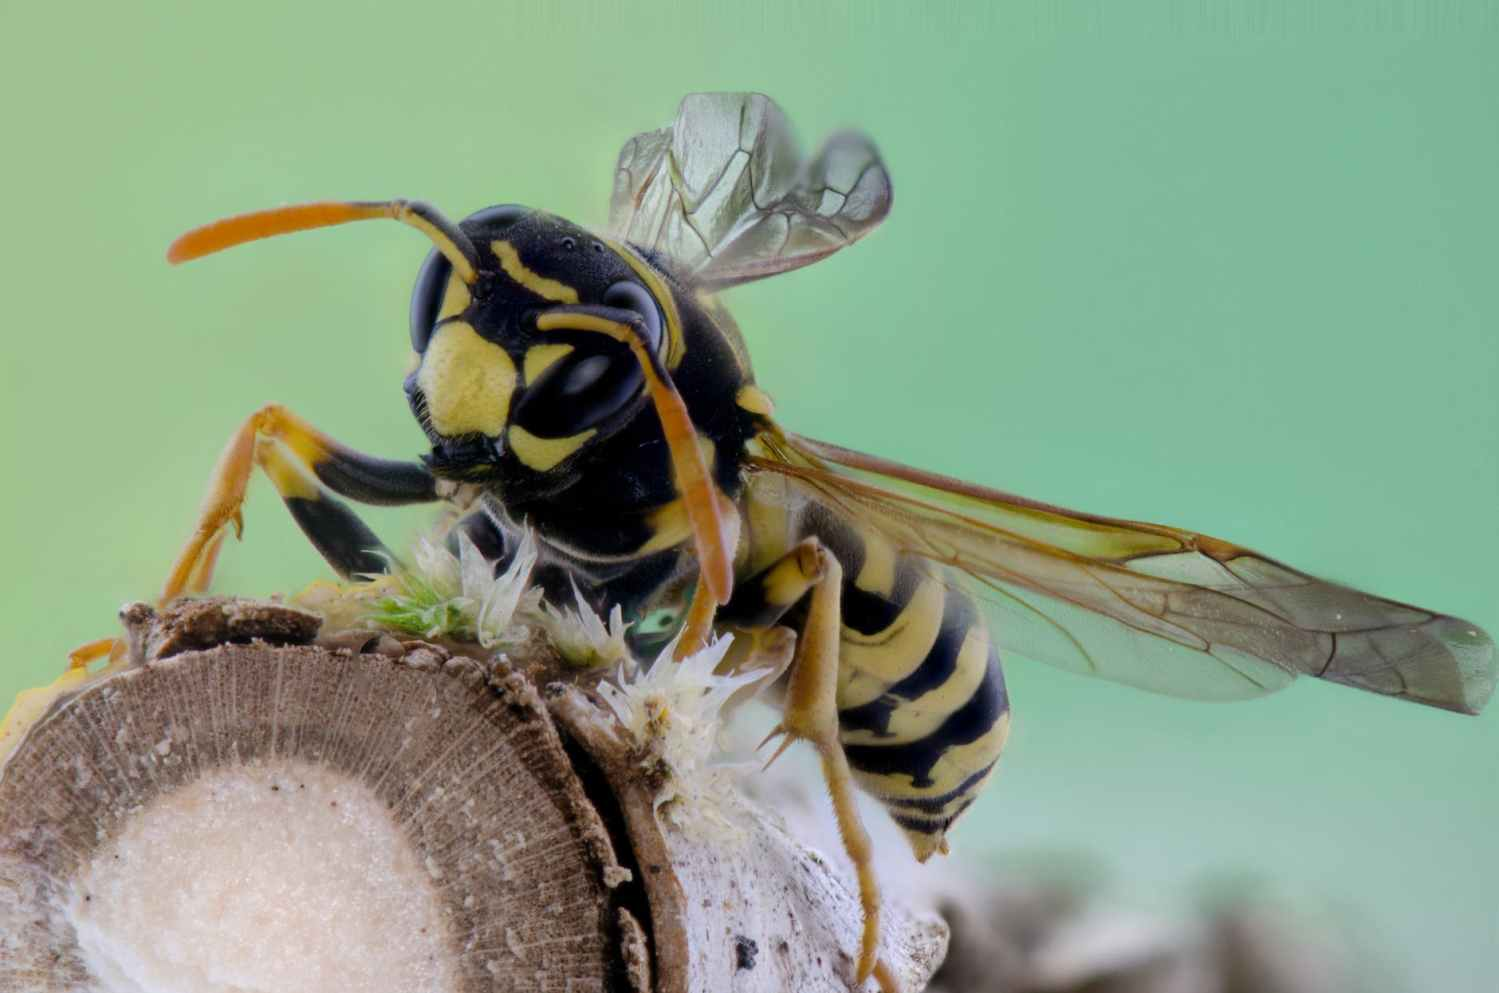 common wasp - wasp nest treatment removal - Bentley environmental - pest control